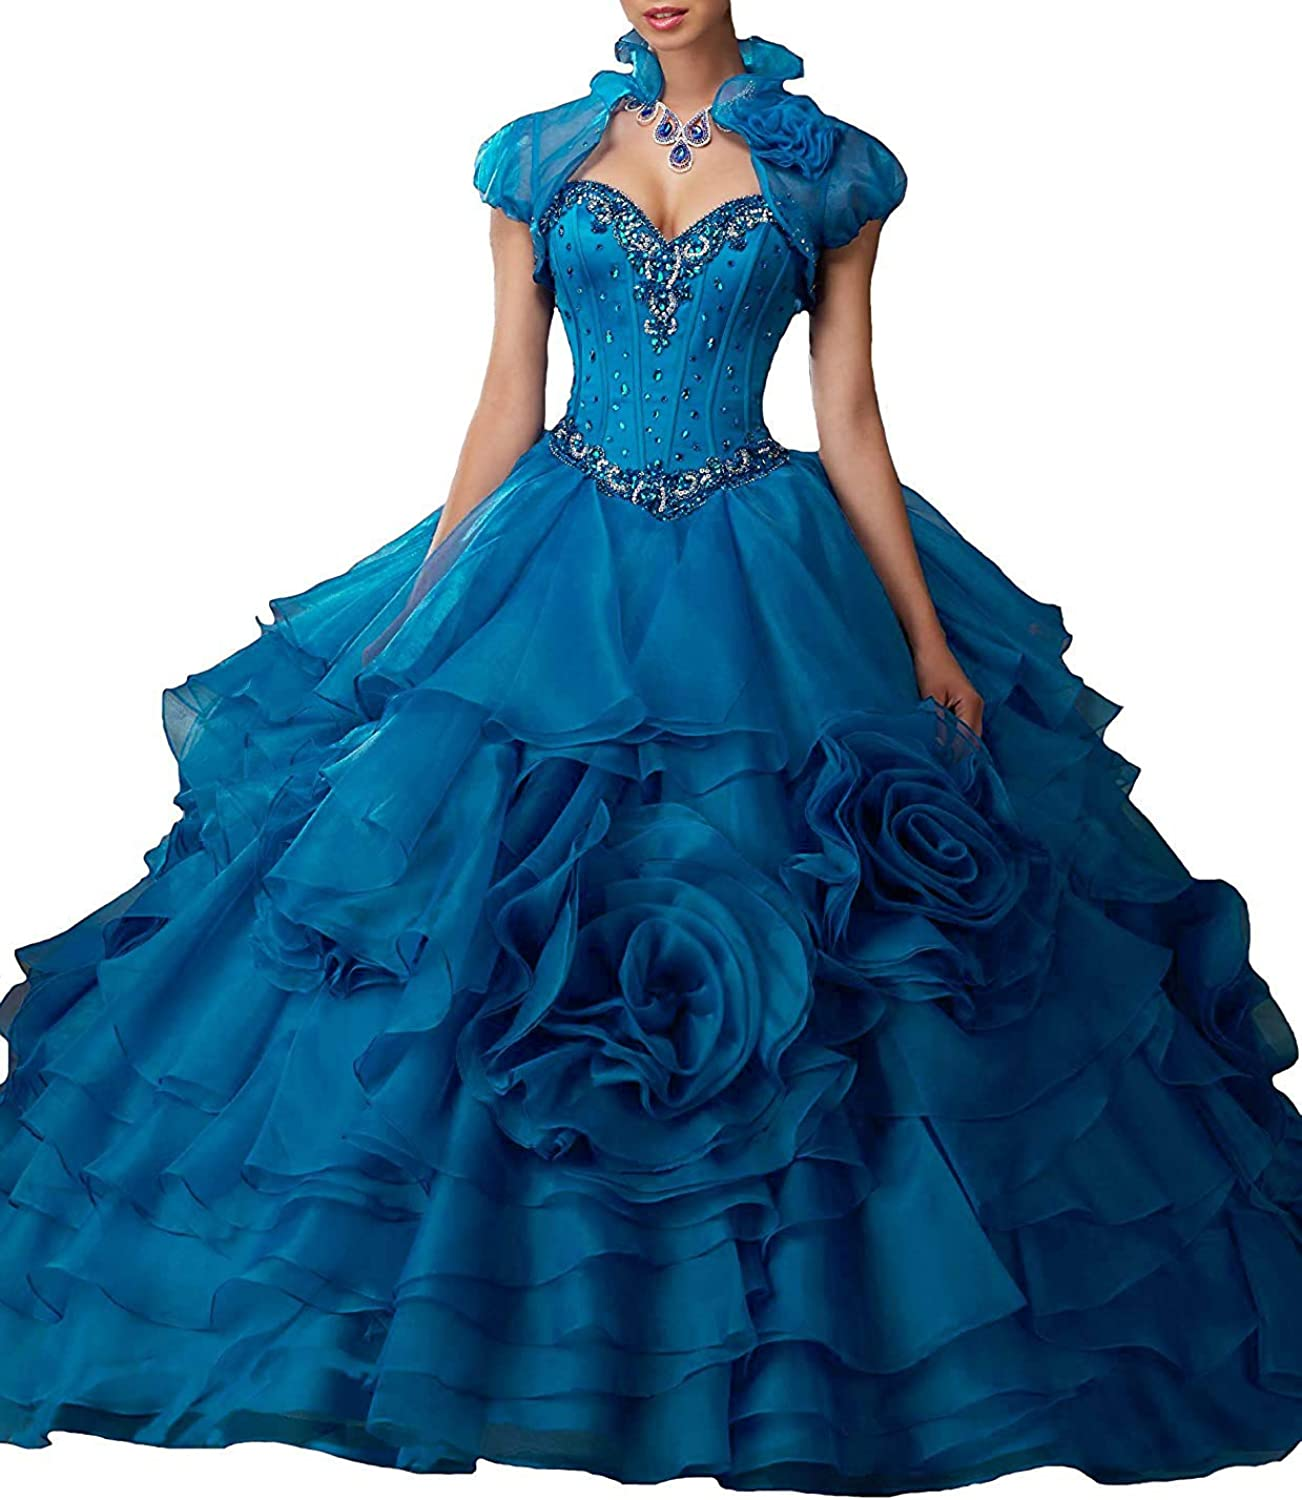 20KyleBird Women's Sweetheart Beaded Quinceanera Dresses with Jacket Organza Floral Ruffles Sweet 16 Dresses Ball Gown